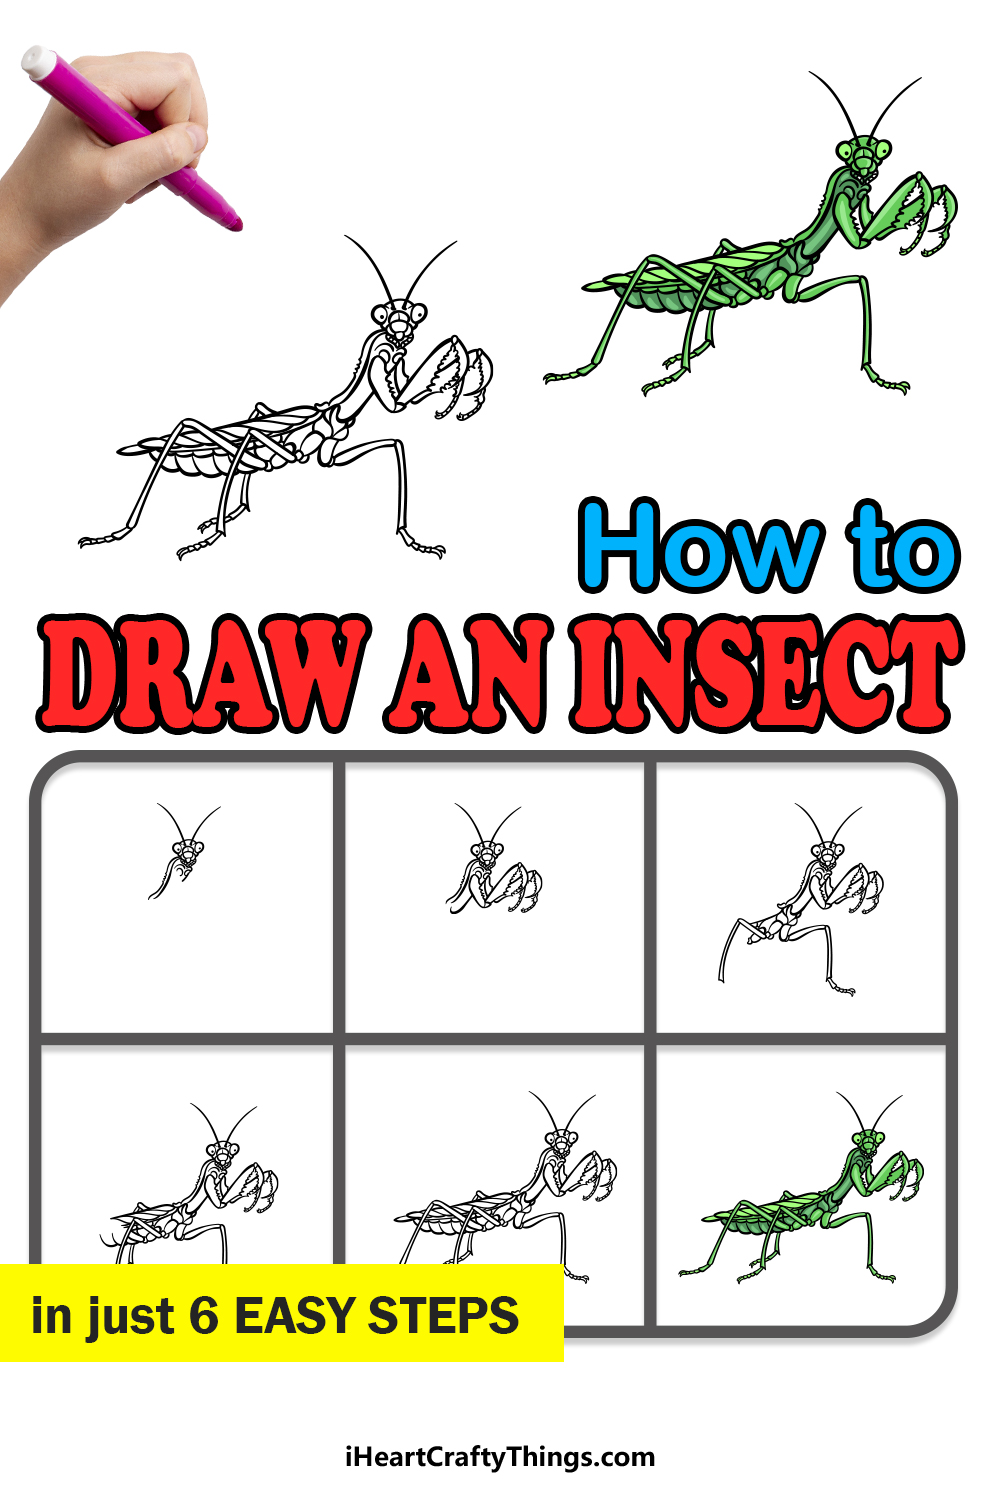 how to draw an insect in 6 easy steps